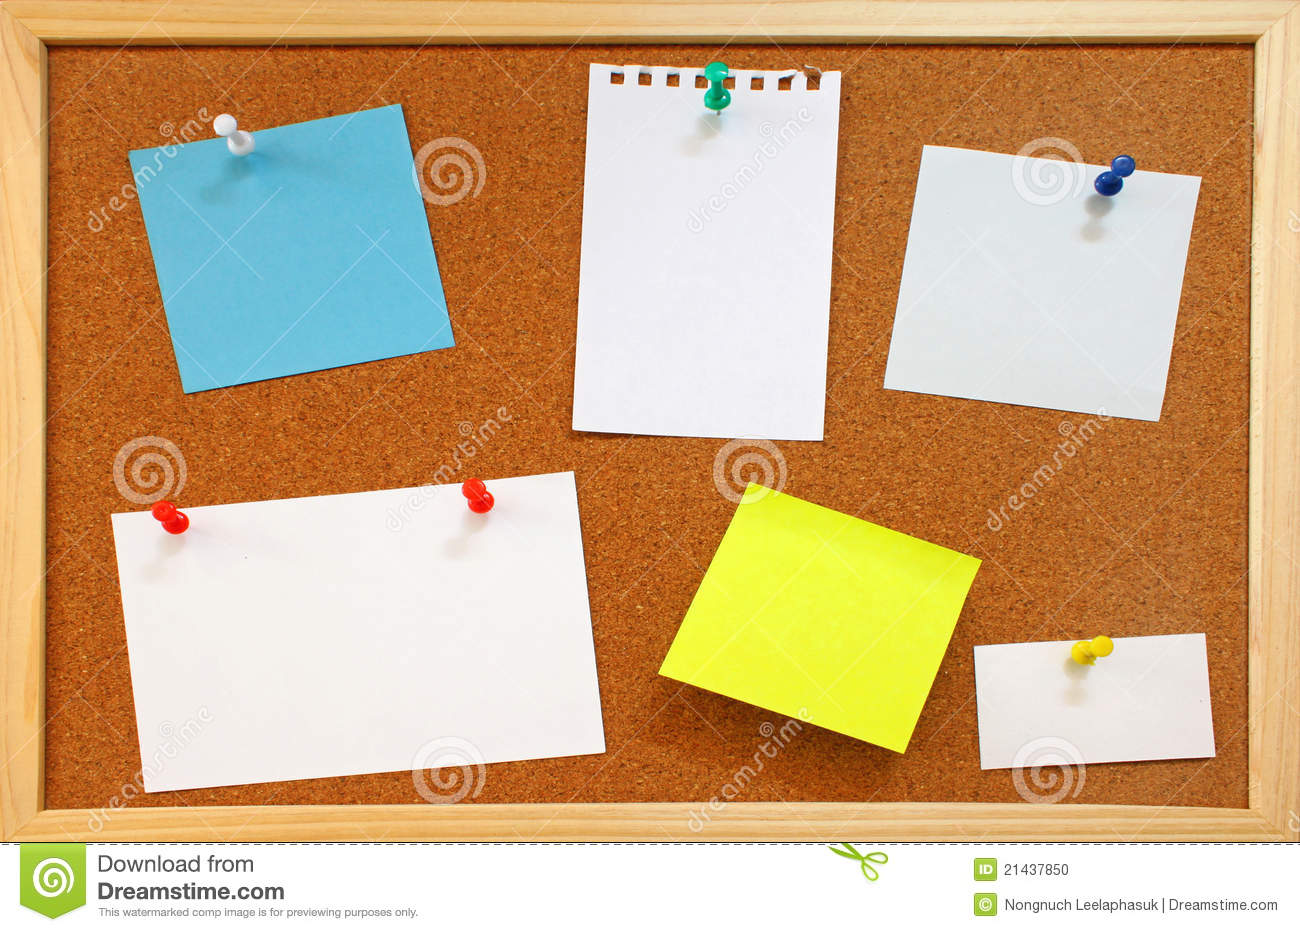 Blank notes with push pins on cork board stock photo for Cork board pin display